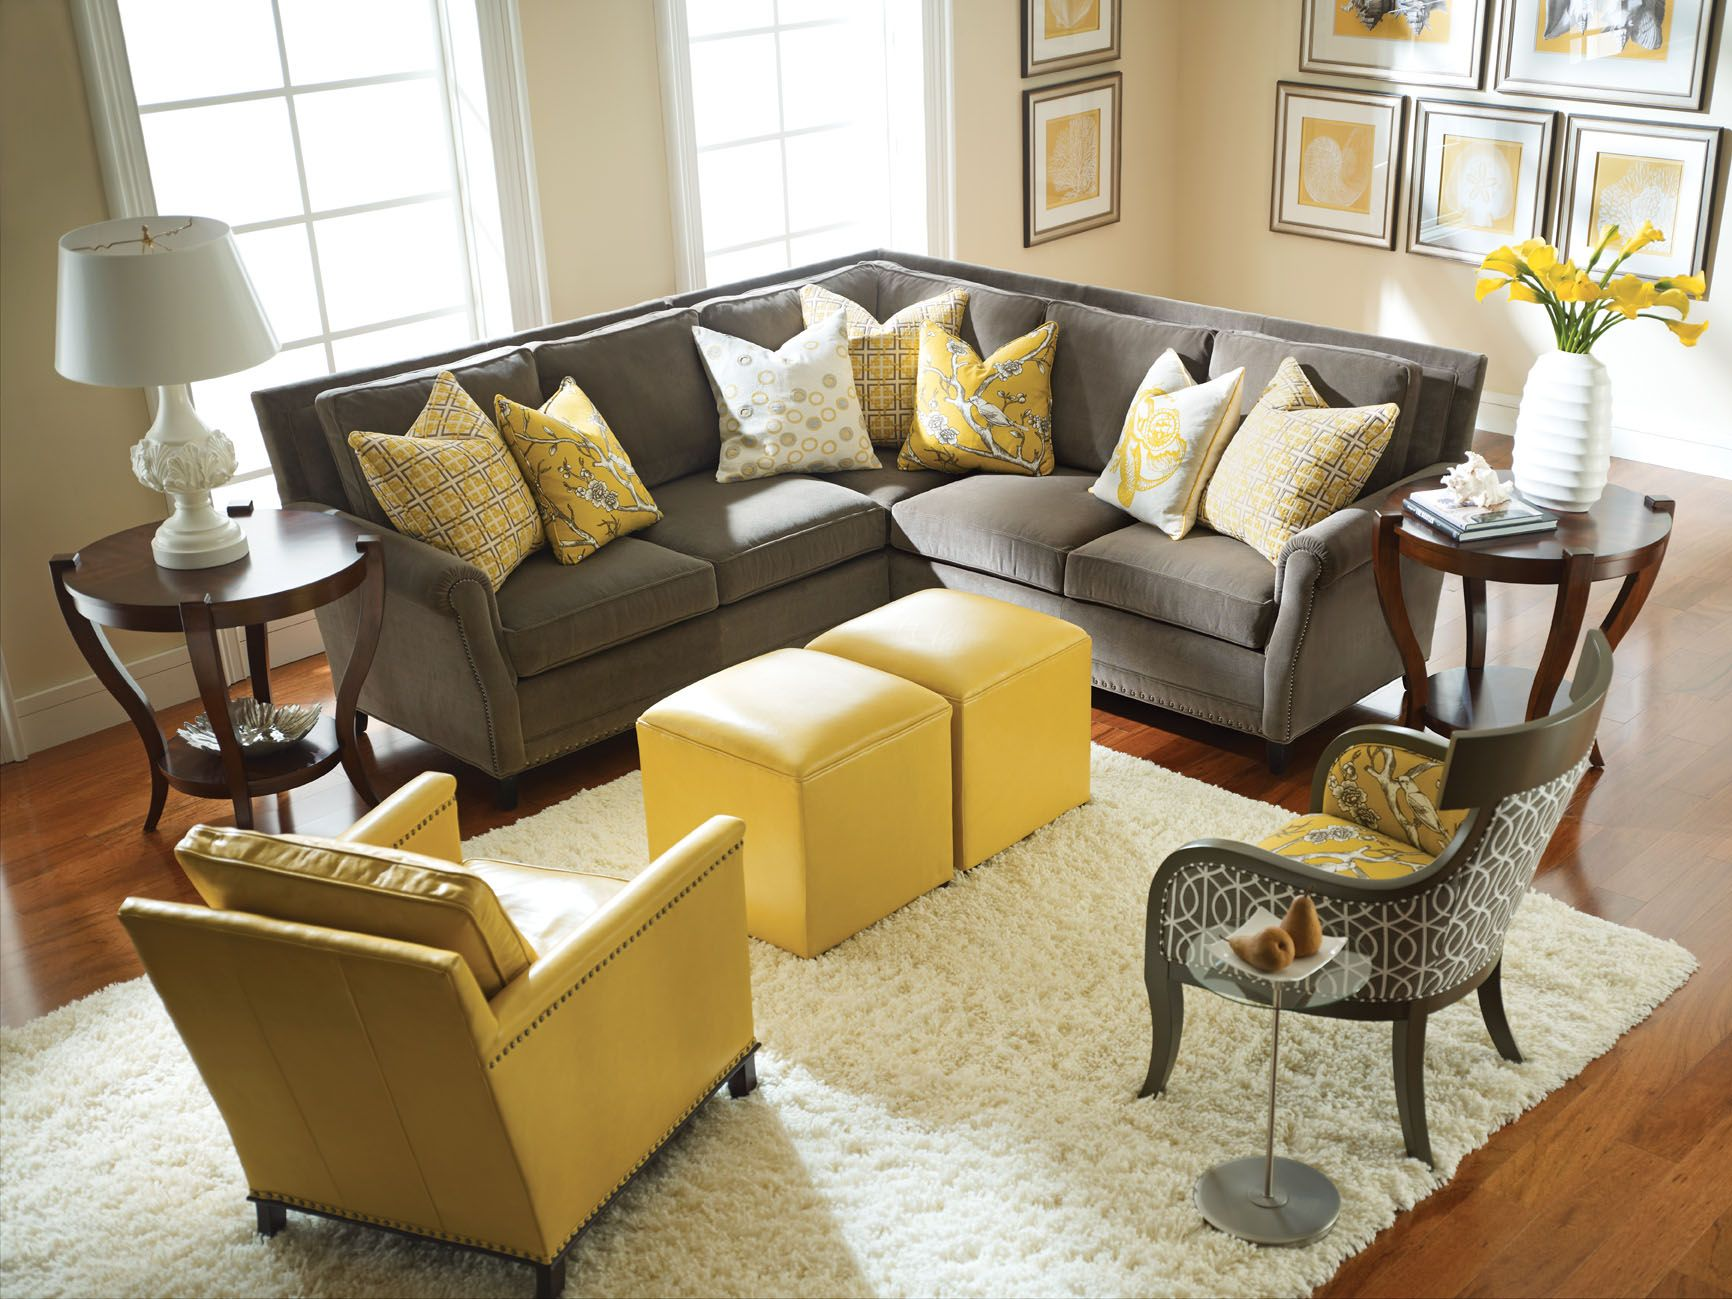 25+ great ideas about Yellow living room furniture on Pinterest